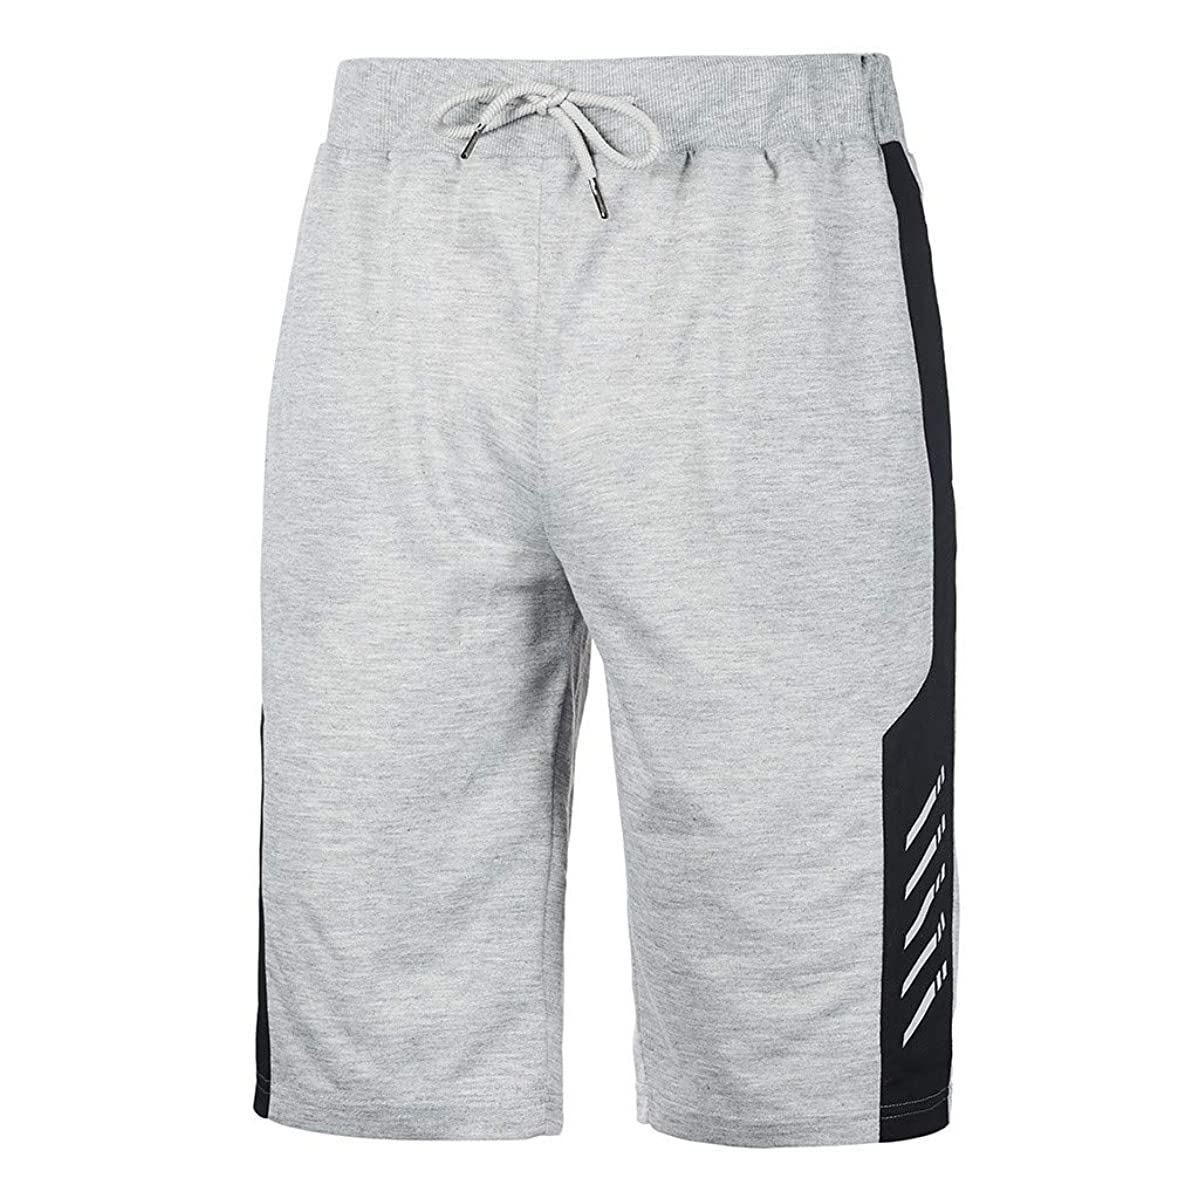 Men Summer Sport Clothes, Male Swimming Surfing Running Fitness Casual Slim Sleeveless Tank/Beach Shorts/Classic Sets